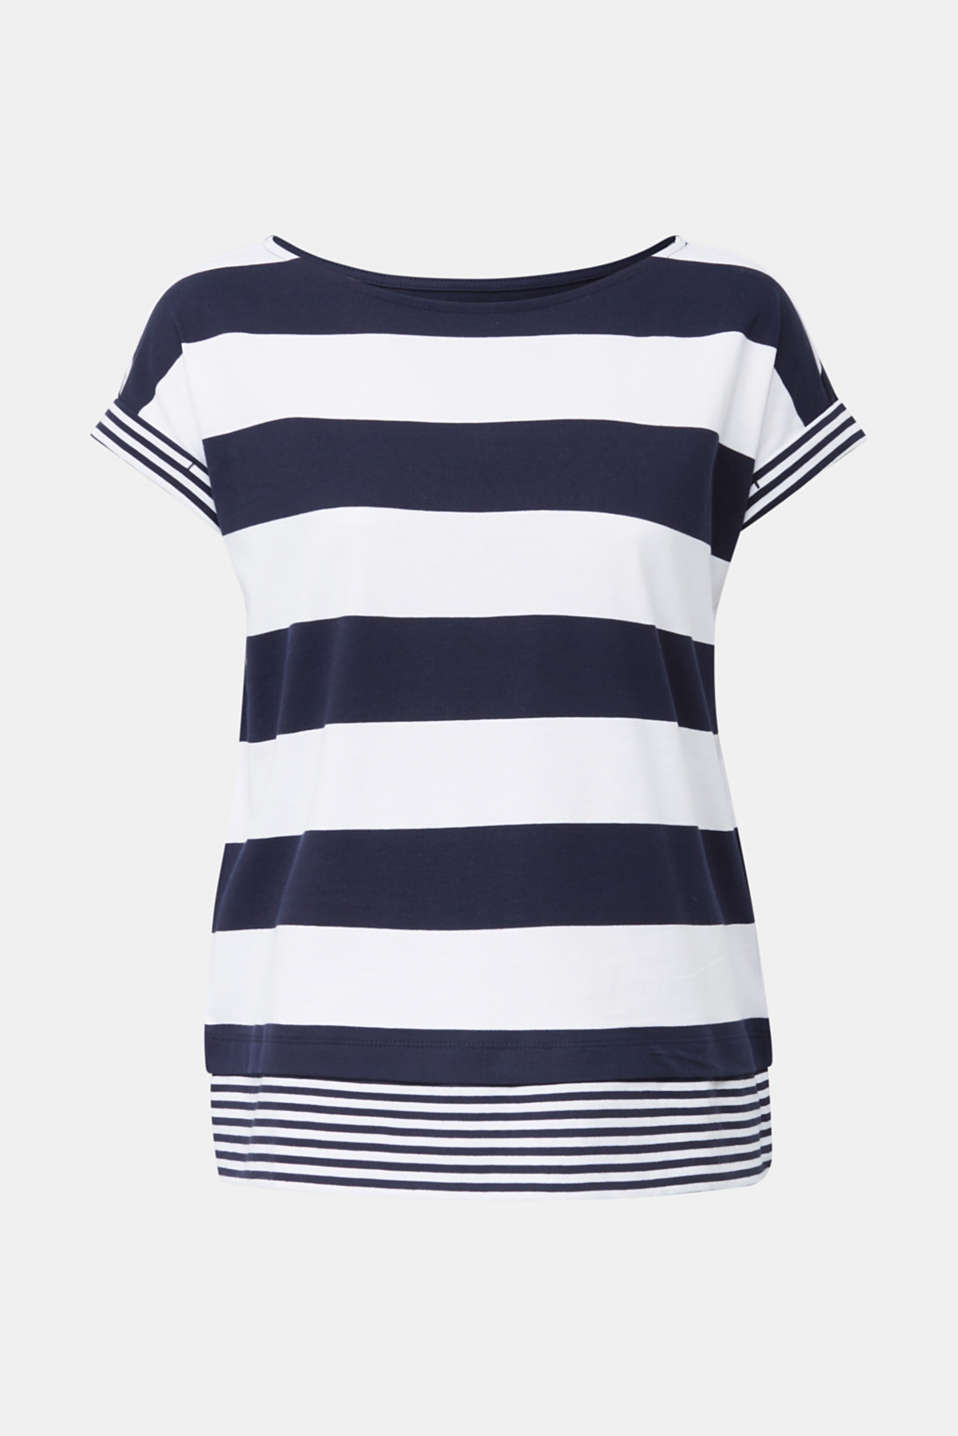 Striped top, 100% organic cotton, NAVY, detail image number 7